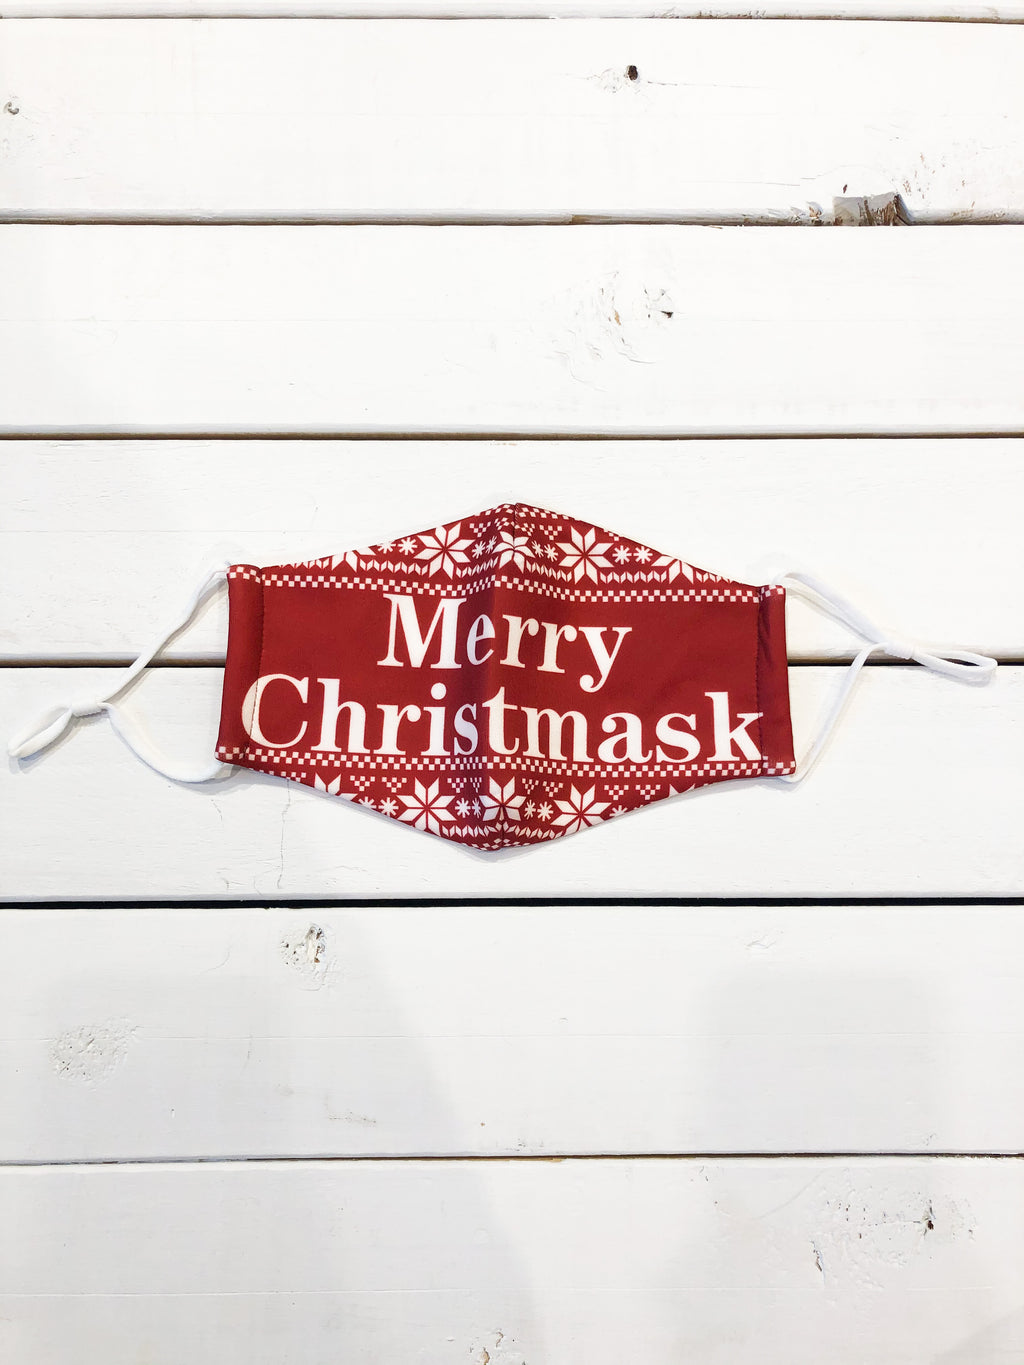 Merry Christmask!